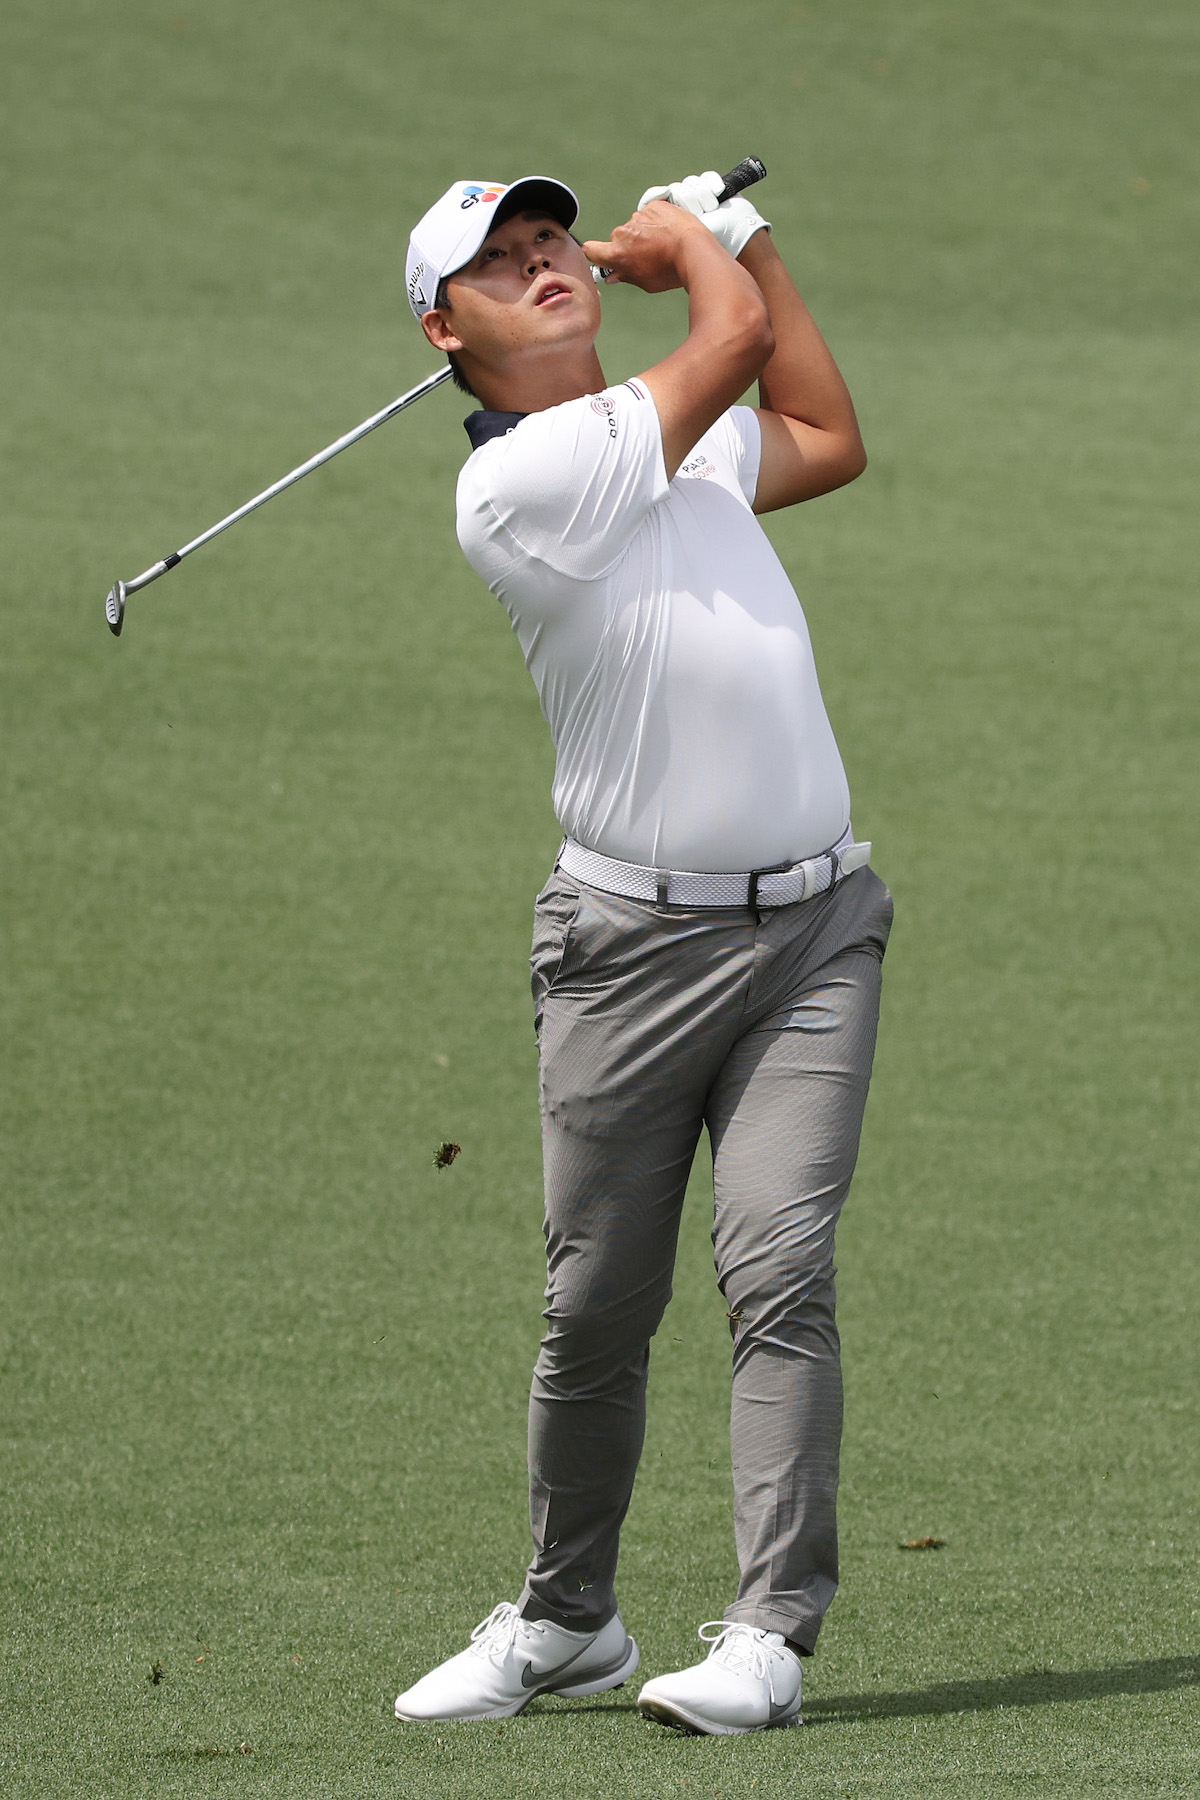 Si Woo Kim of South Korea plays a shot on the second hole during the final round of the Masters at Augusta National Golf Club on April 11, 2021 in Augusta, Georgia. (Photo by Kevin C. Cox/Getty Images)